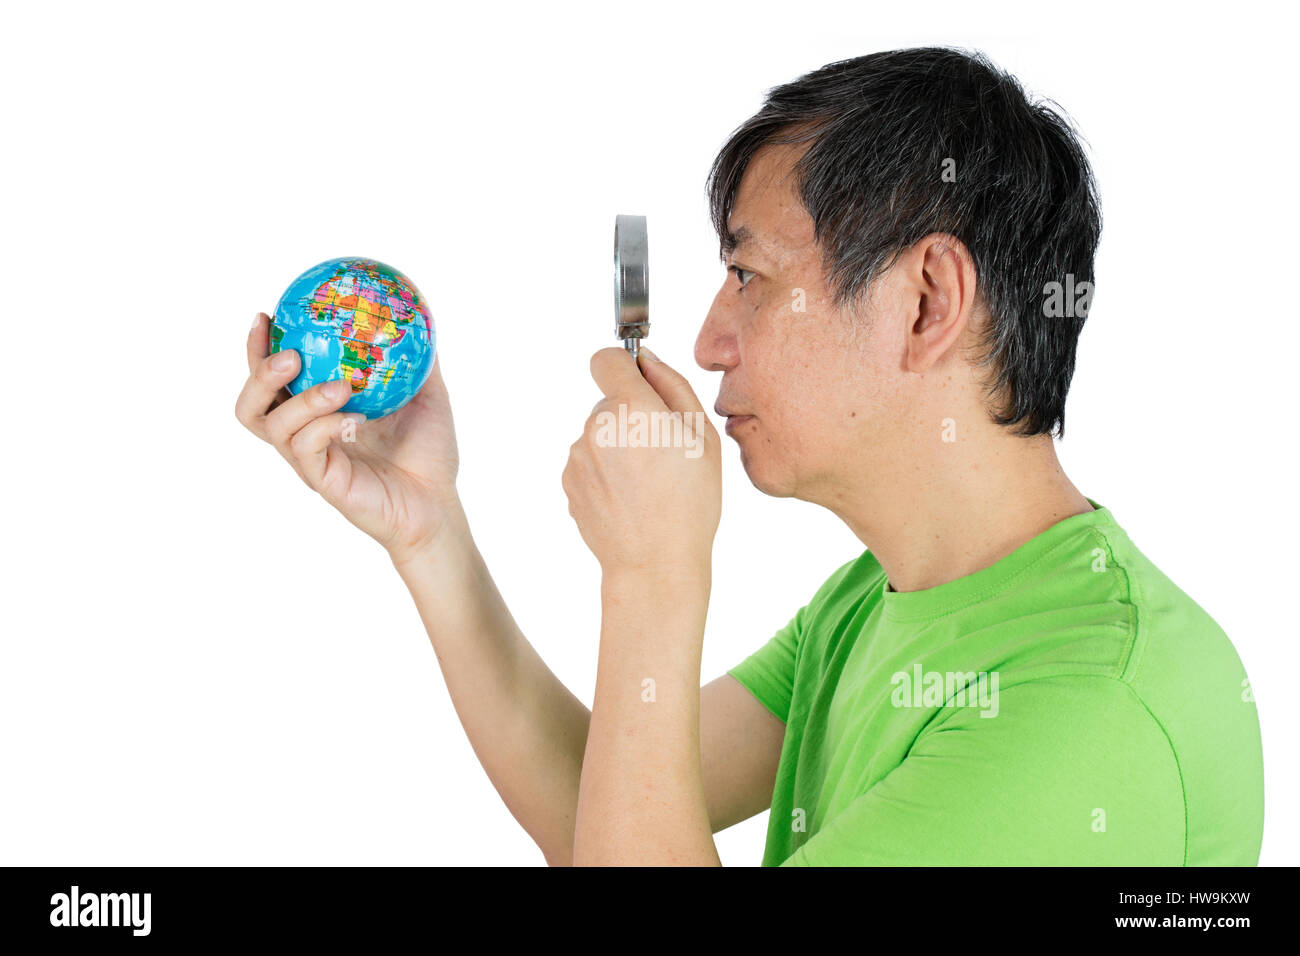 Asian Chinese Man Looking At Globe Through Magnifying Glass in isolated White Background - Stock Image